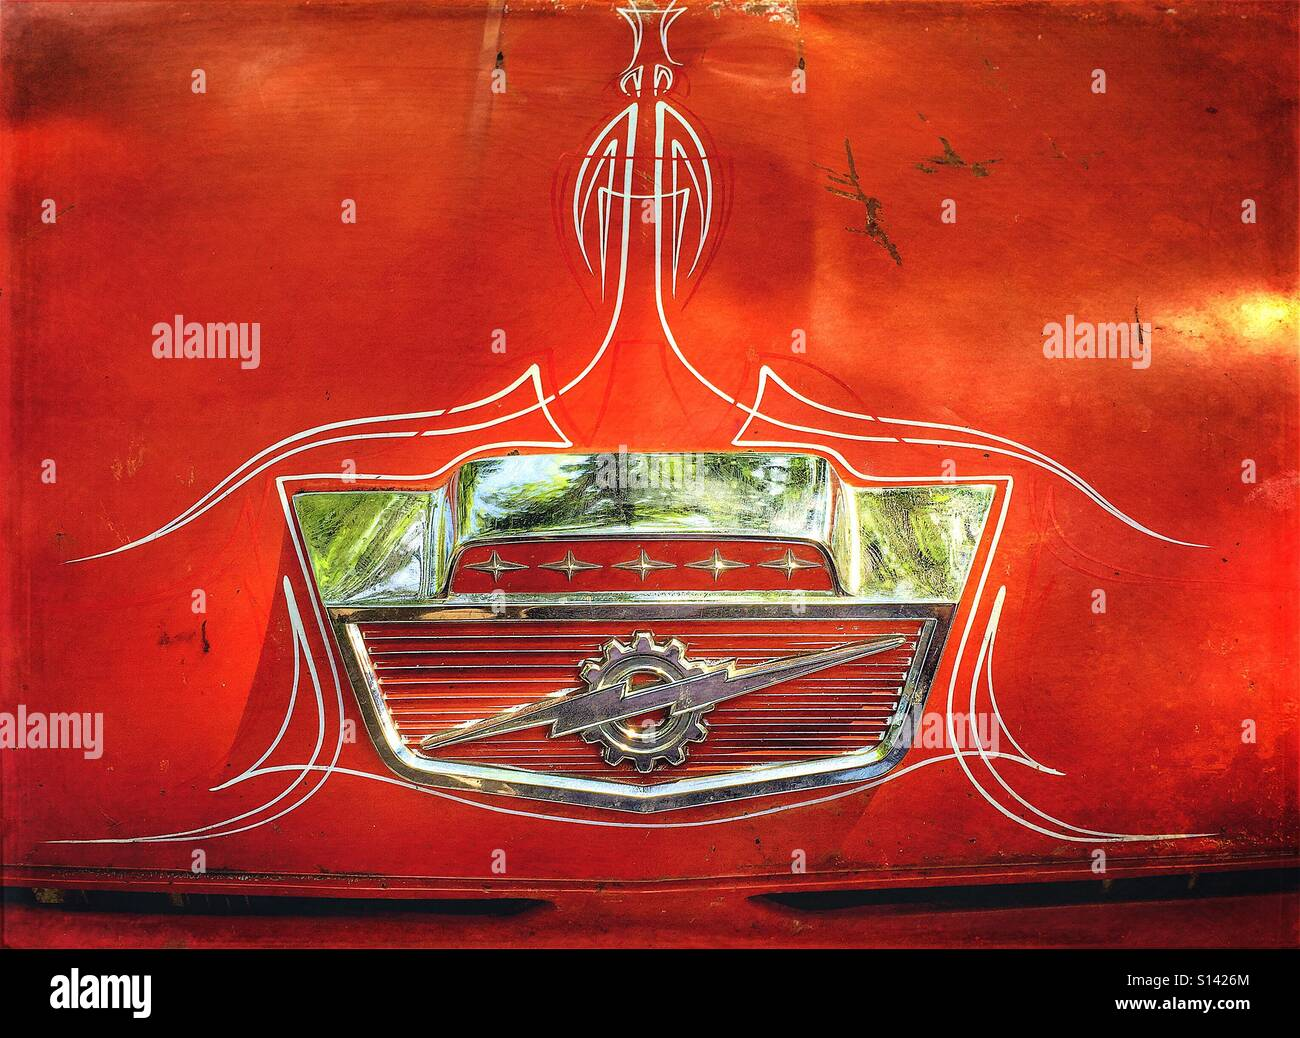 Abstract detail of vintage logo on boot trunk of antique Ford car. - Stock Image